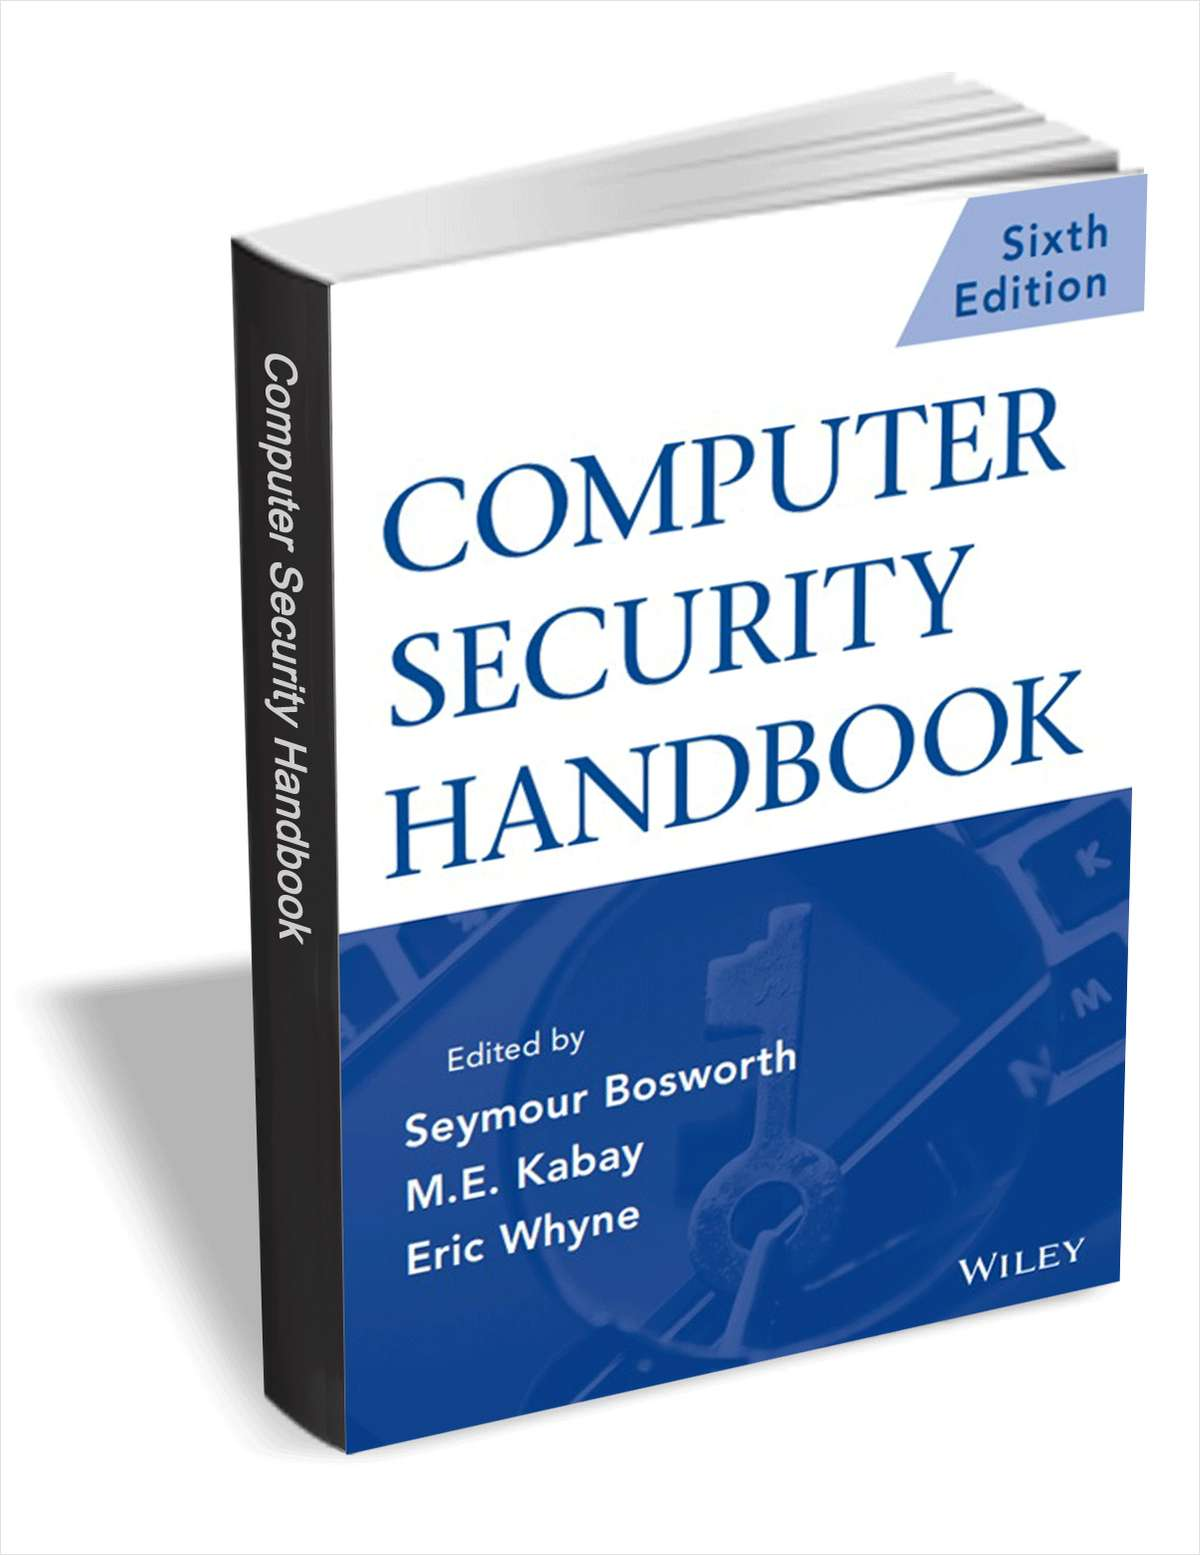 Computer Security Handbook, 6th Edition ($130 Value) FREE For a Limited Time